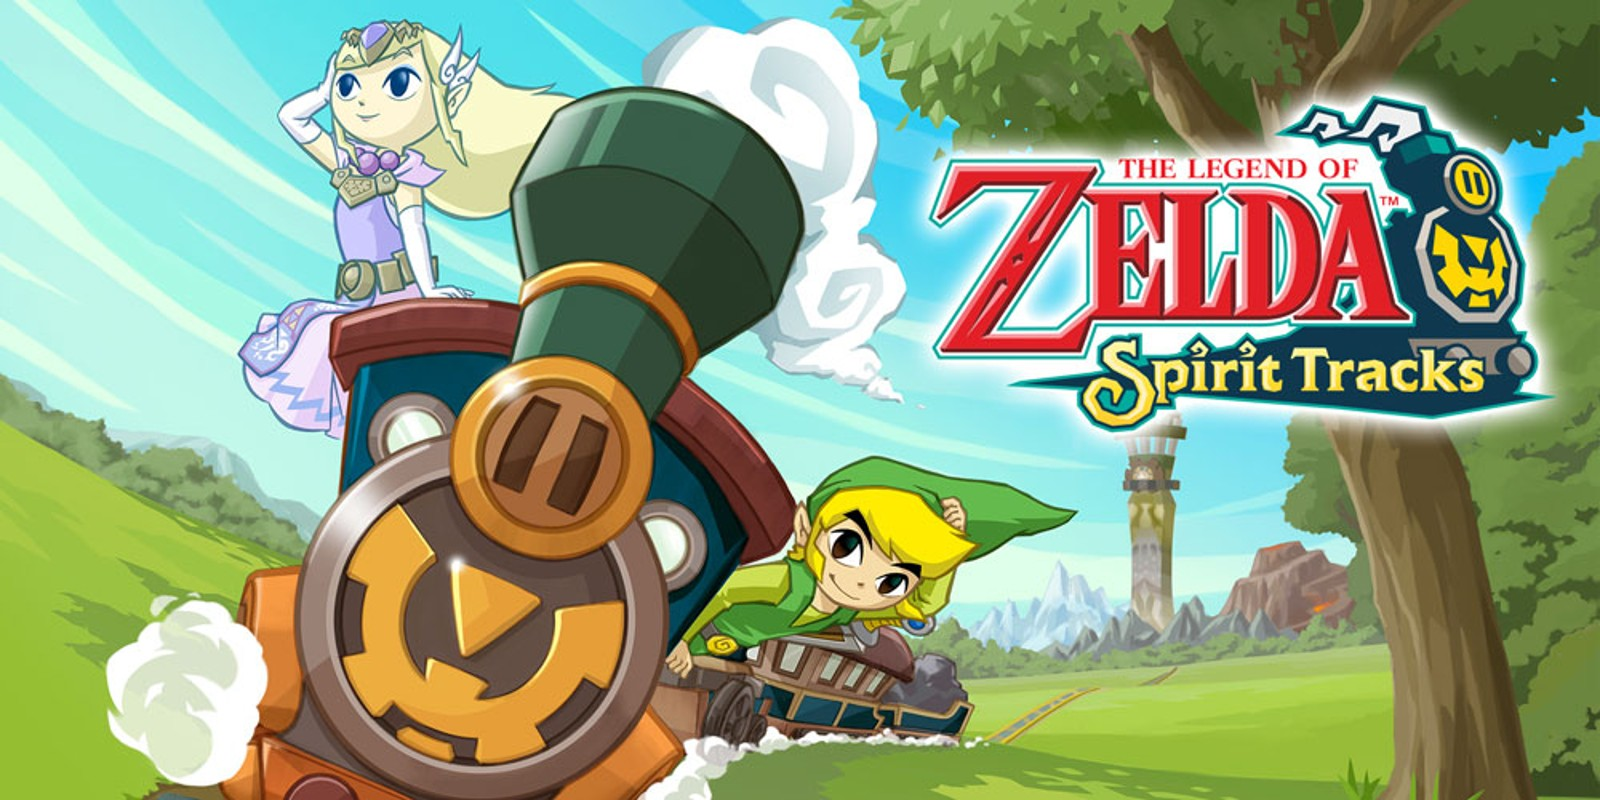 Legend of Zelda and Donkey Kong mobile games could be on the way